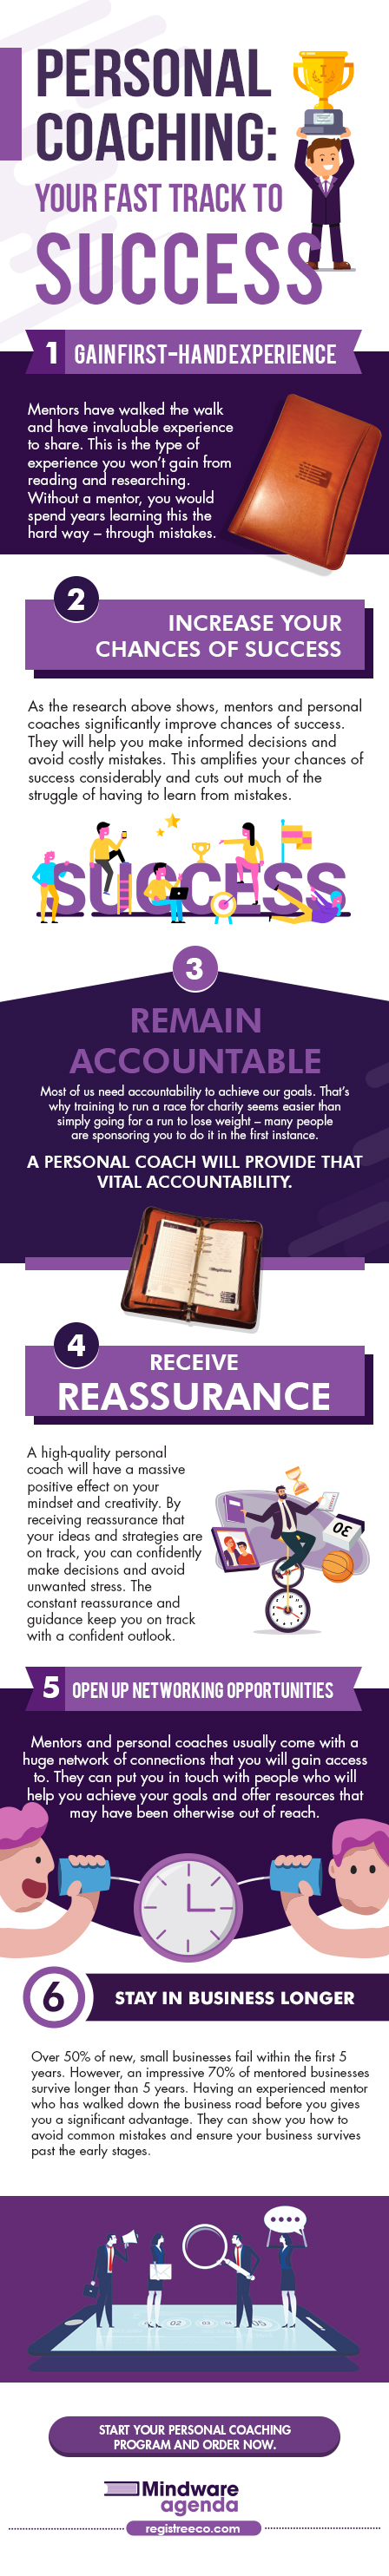 Infographic image of the Personal Coaching